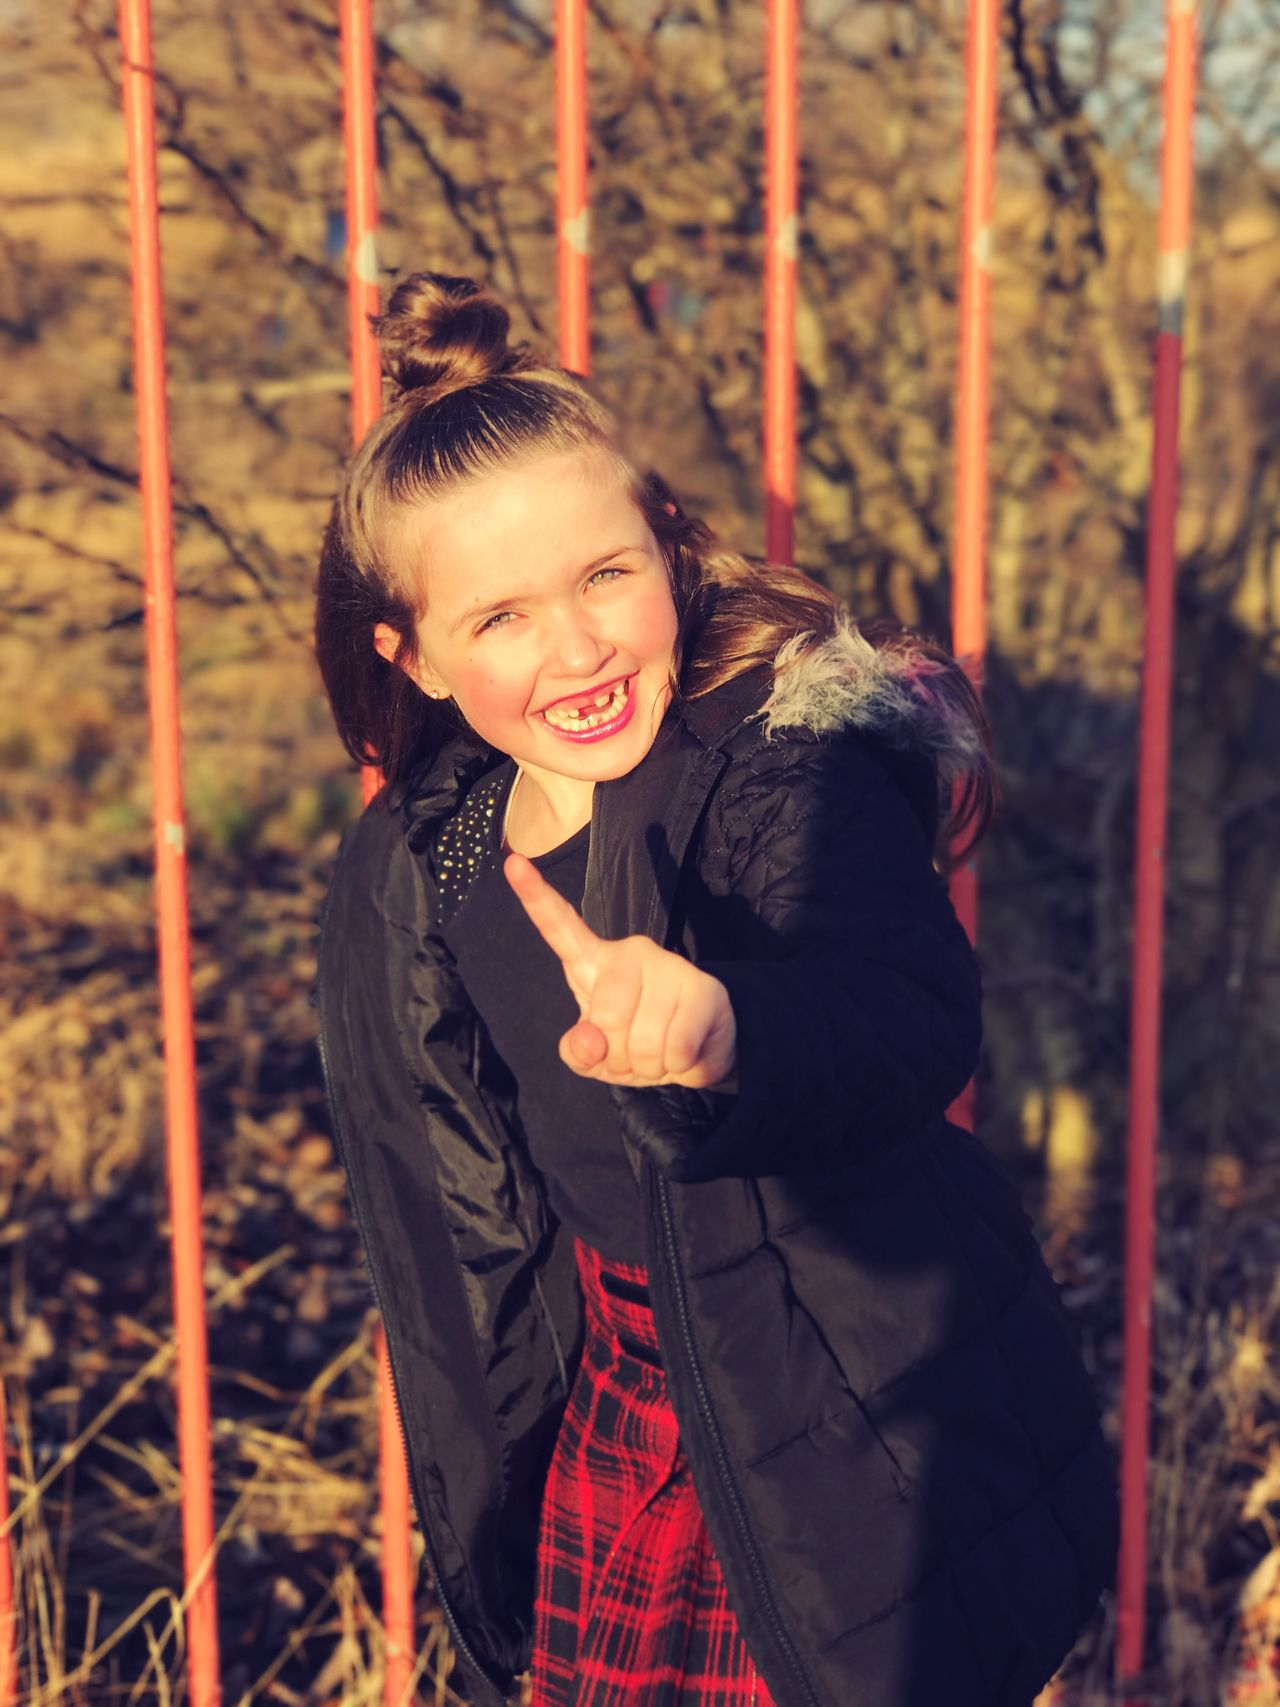 My Beautiful Neice Smiling Happiness Young Adult Cheerful Nature Adults Only Outdoors People Adult Autumn Fun Portrait Day Human Body Part IPhoneography Eyem Portraits IPhone 7 Plus ShotOnIphone